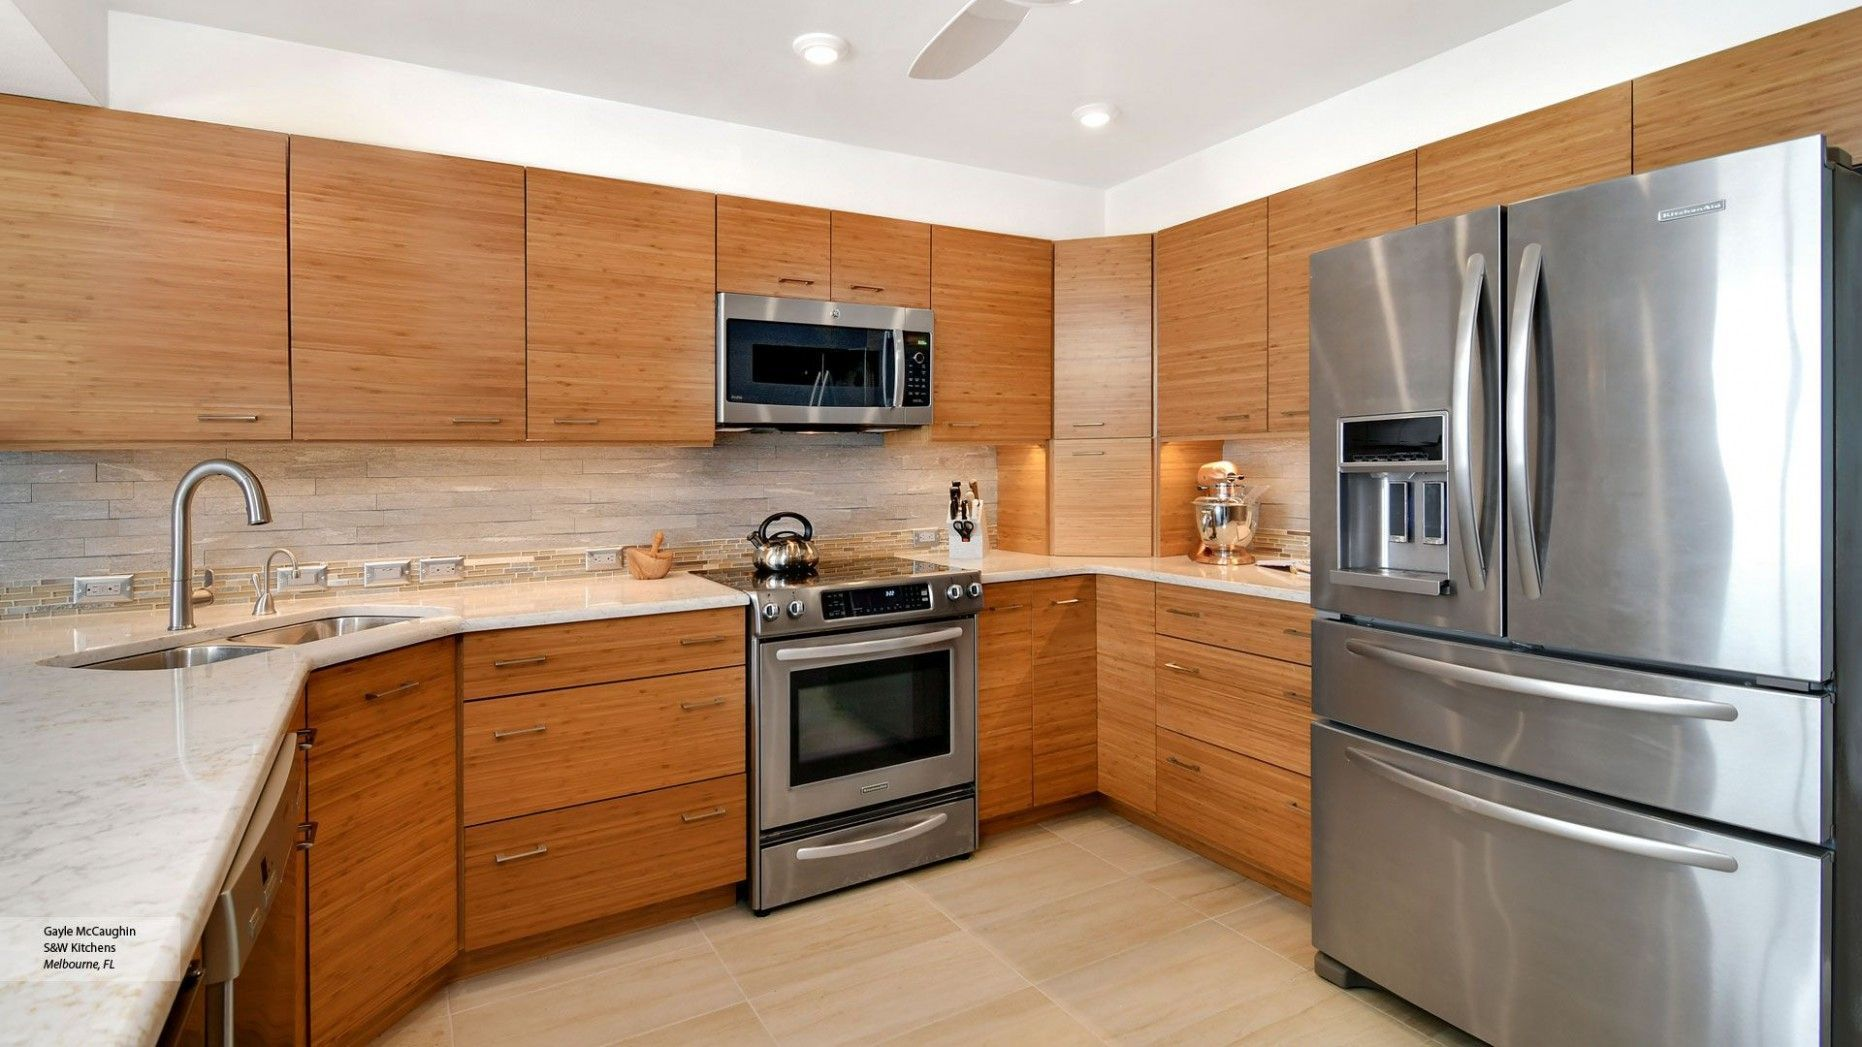 Bamboo Kitchen Cabinets Lowes Bamboo Kitchen Cabinets Lowes C Kireiusa C Bam In 2020 Outdoor Kitchen Cabinets Kitchen Cabinets Modern Kitchen Cabinets